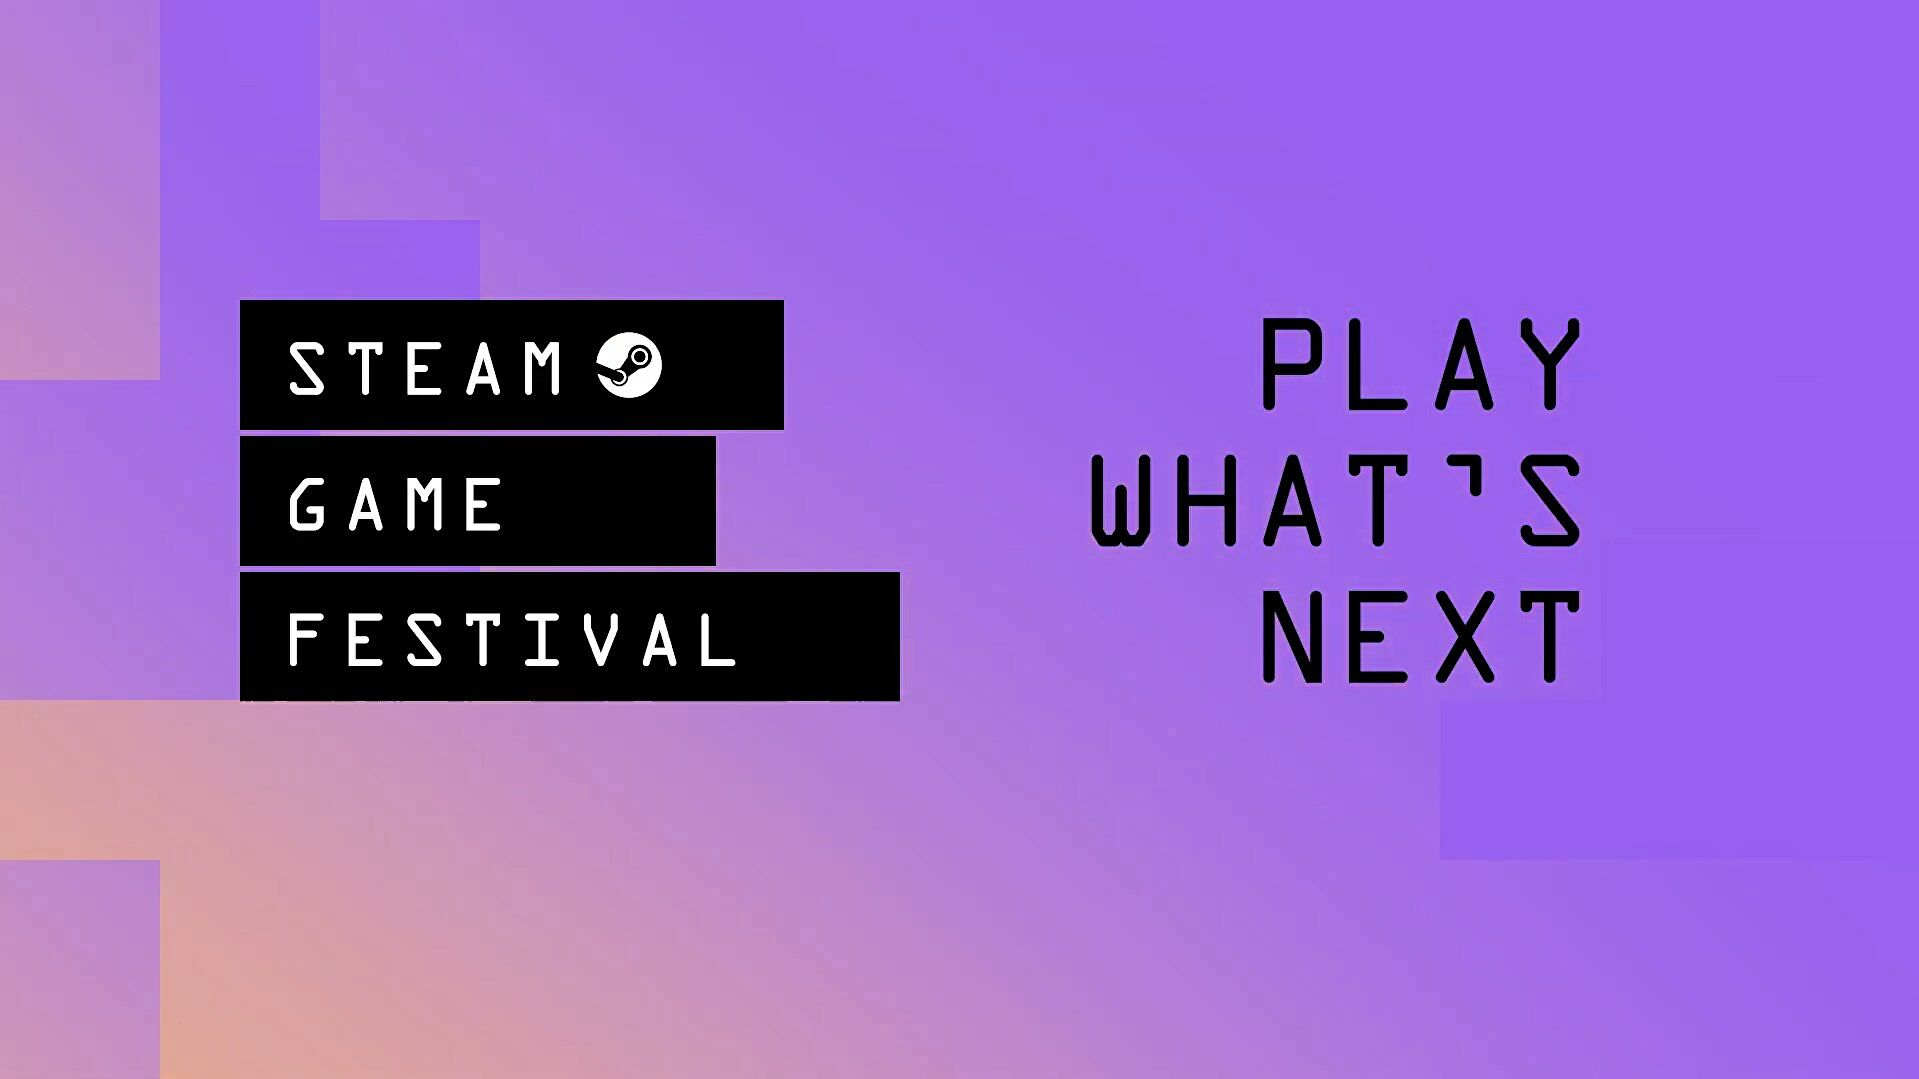 The next Steam Game Festival kicks off in June